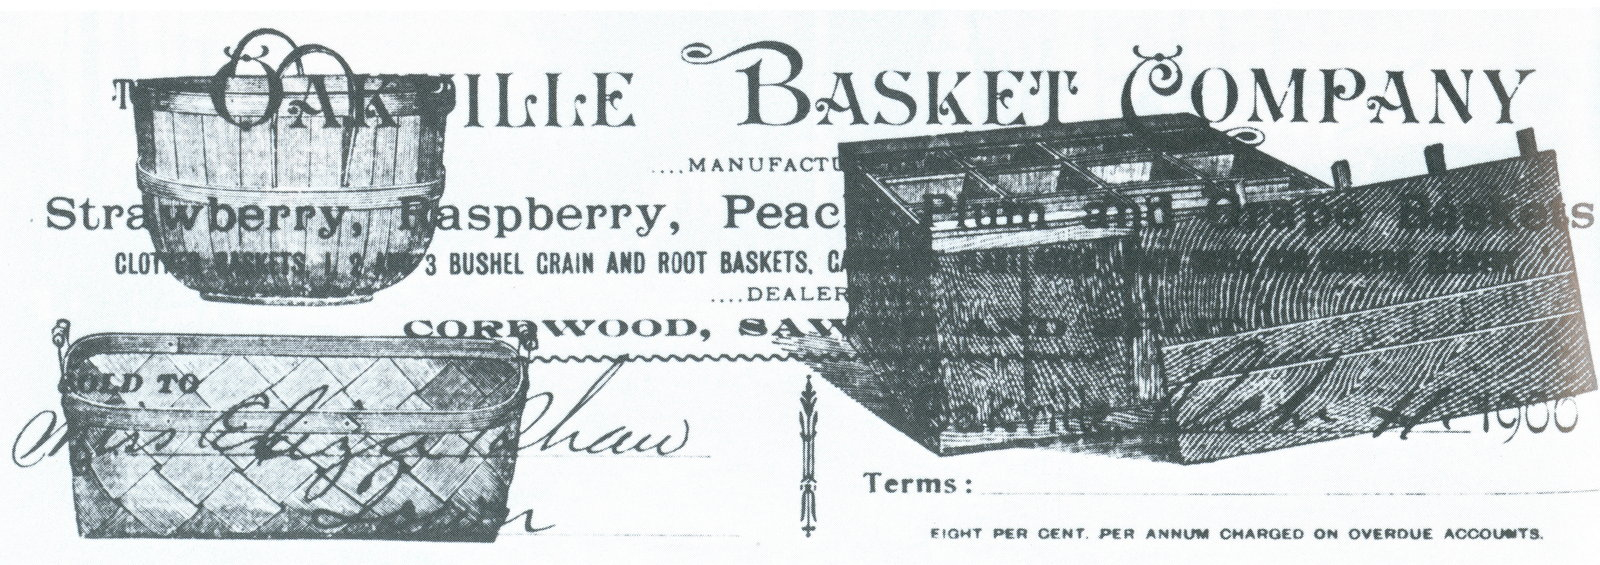 Oakville Basket Company advertisement